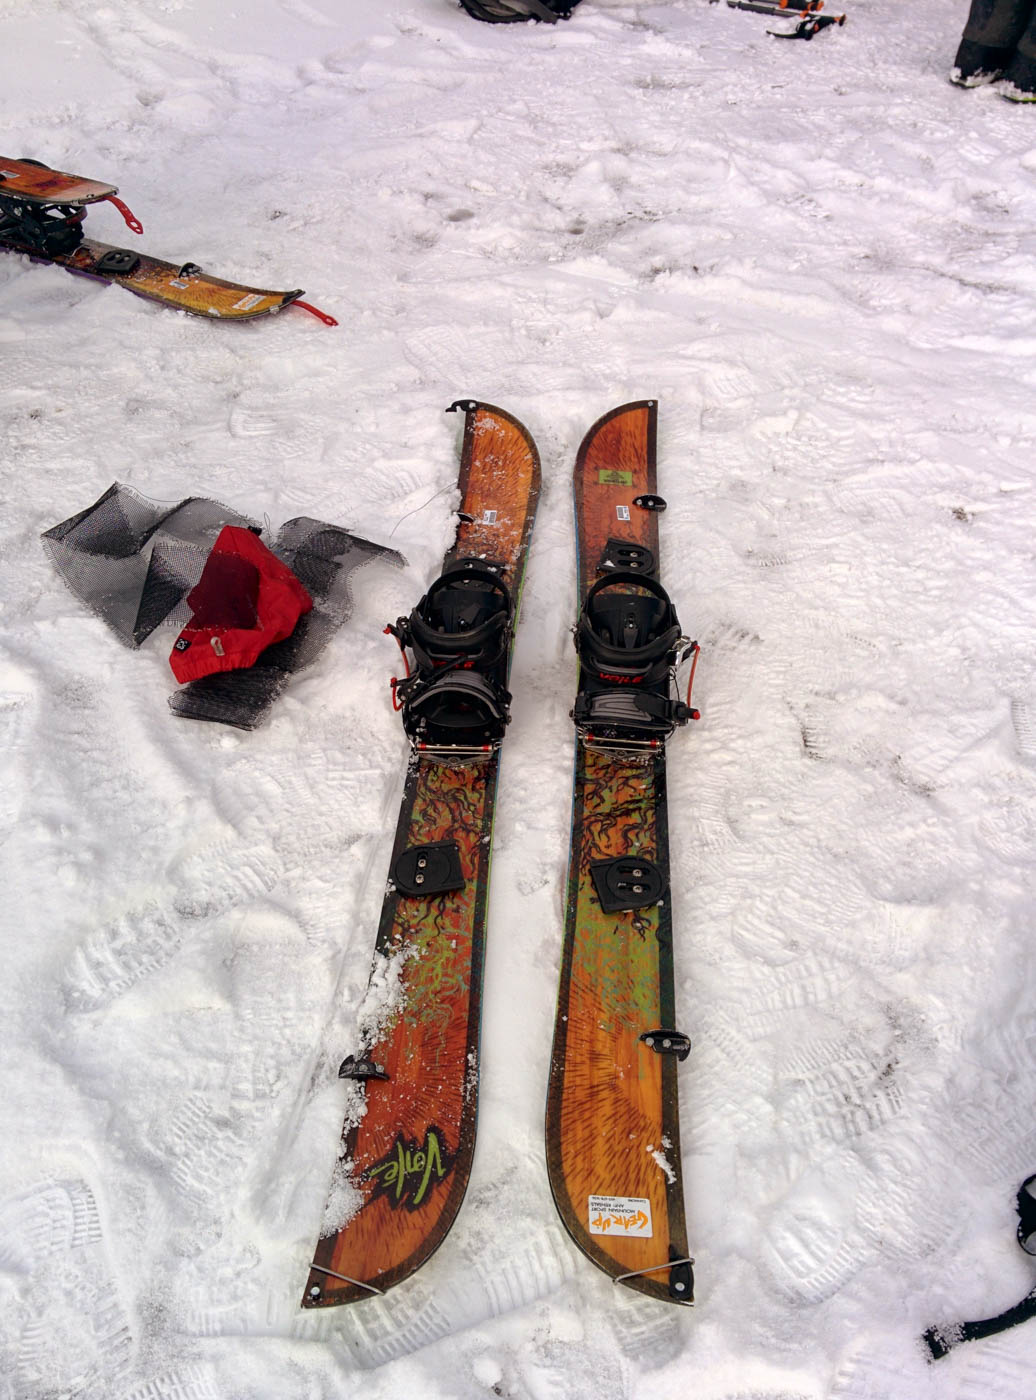 Splitboard split into touring mode